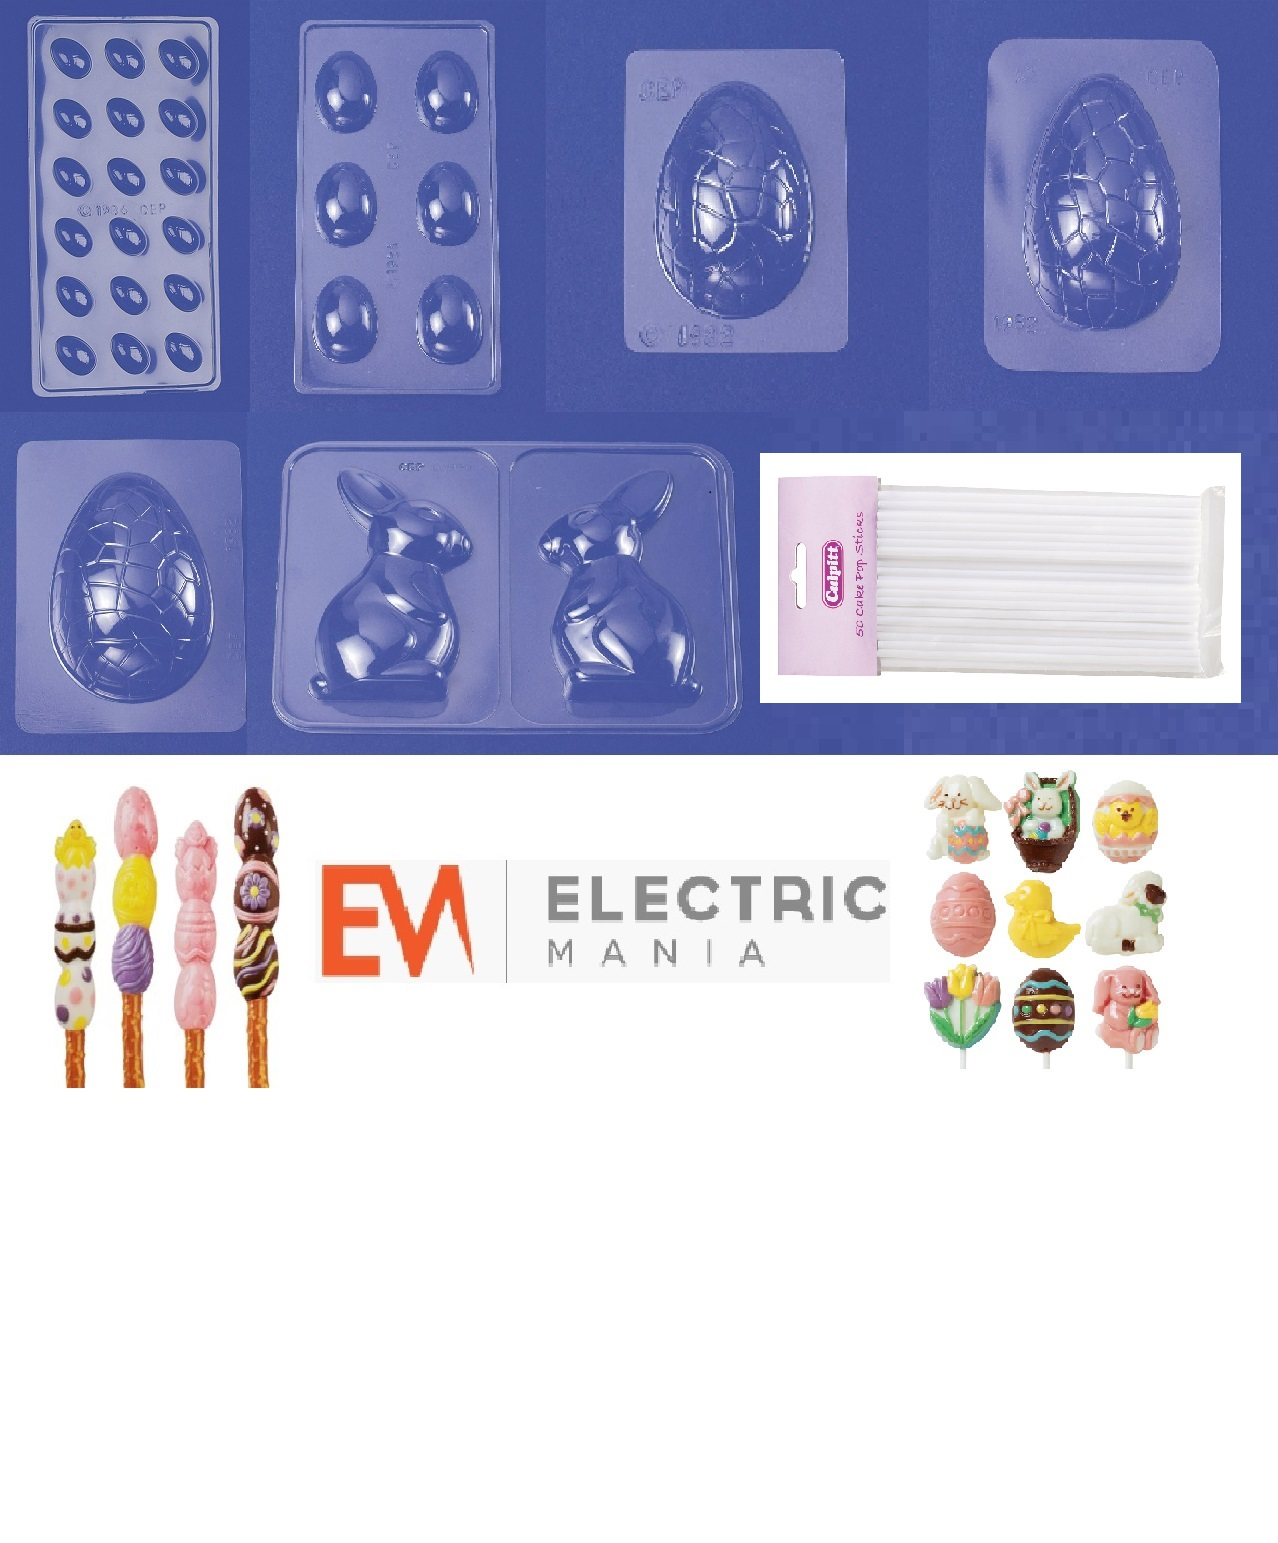 Easter Egg & Lollipop Making Set Machine with Chocolate Melting ...